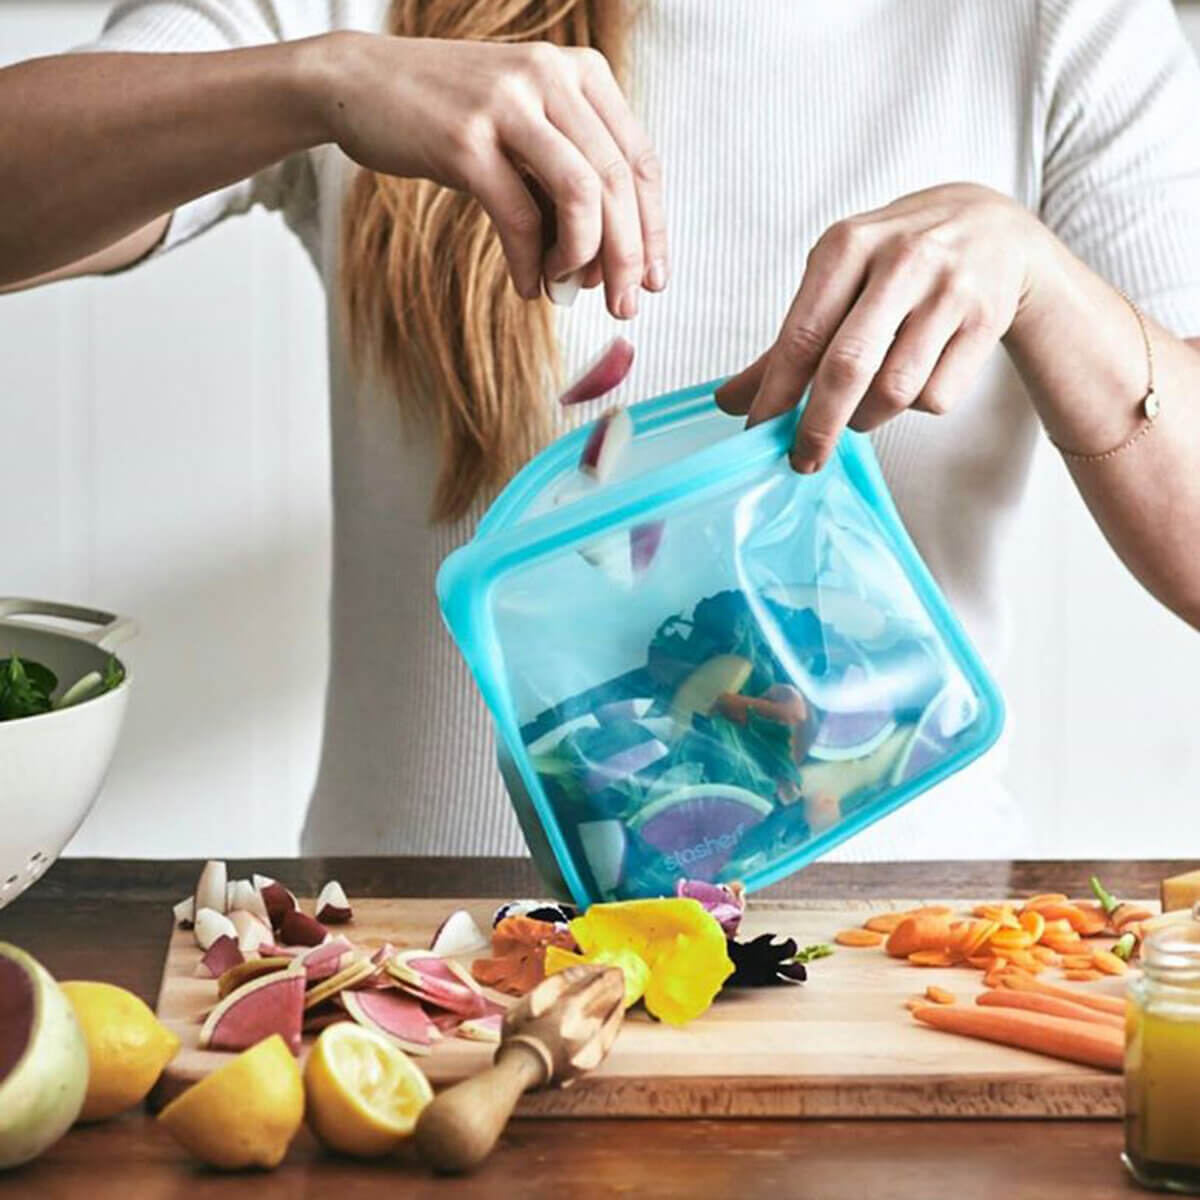 A woman holding one of the most popular plastic-free storage products - a blue Stasher bag from EarthHero, and filling it with fresh salad ingredients